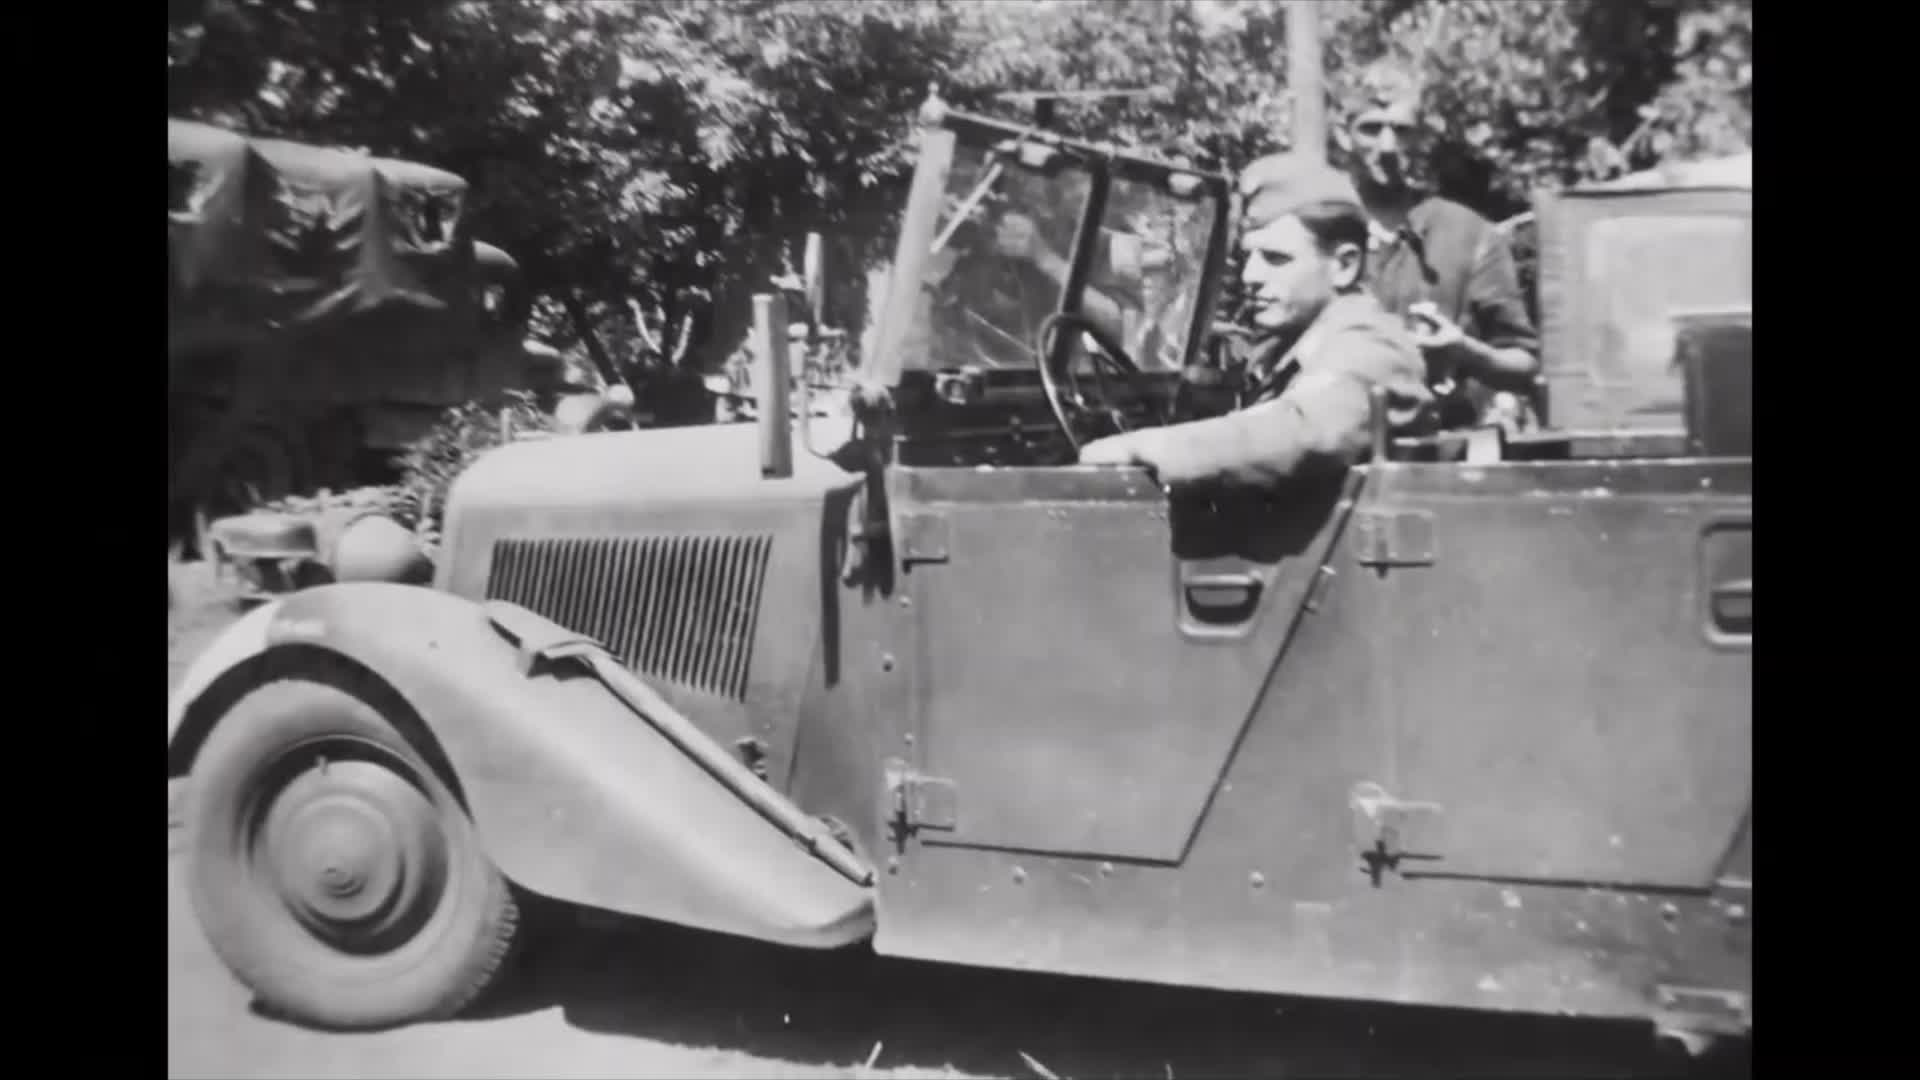 Mercedes-Benz vehicles in use by the Third Reich during the war.